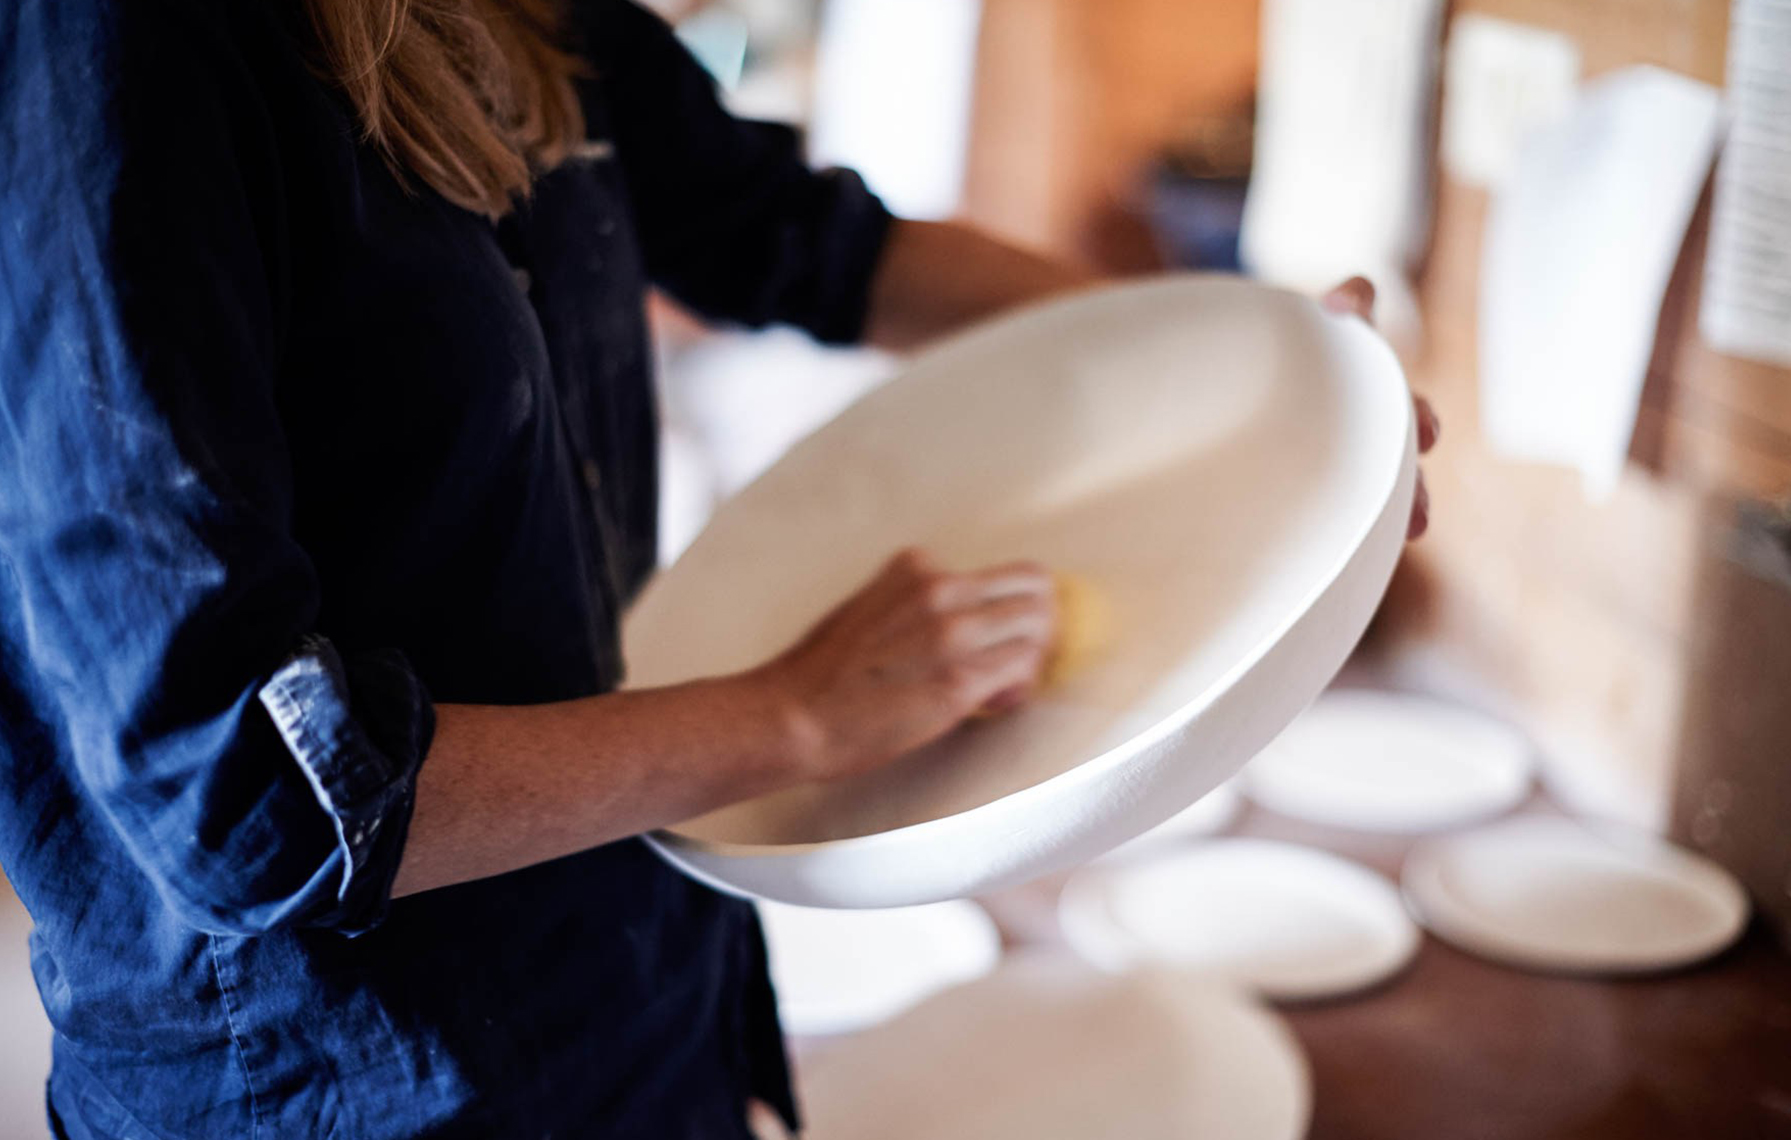 DBO Home Flint and Kent Alex Bates Brand Consulting William and Susan Brinson small batch makers image